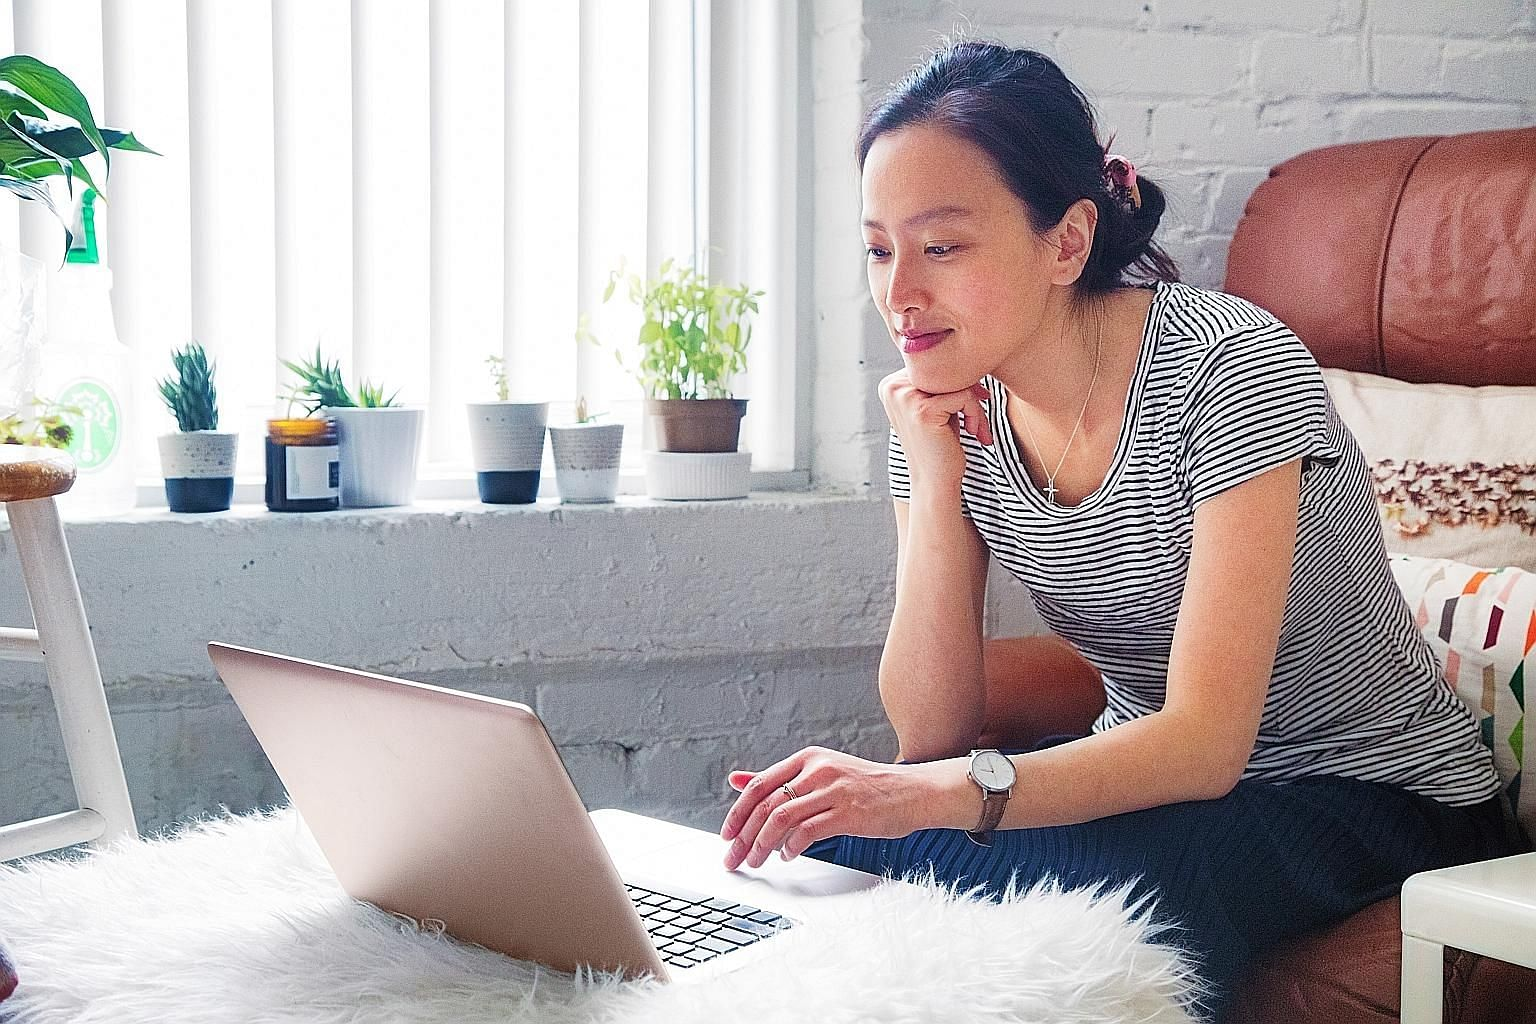 As more people working from home these days attend virtual meetings, an important factor to consider before buying a laptop is the placement of a Web camera.